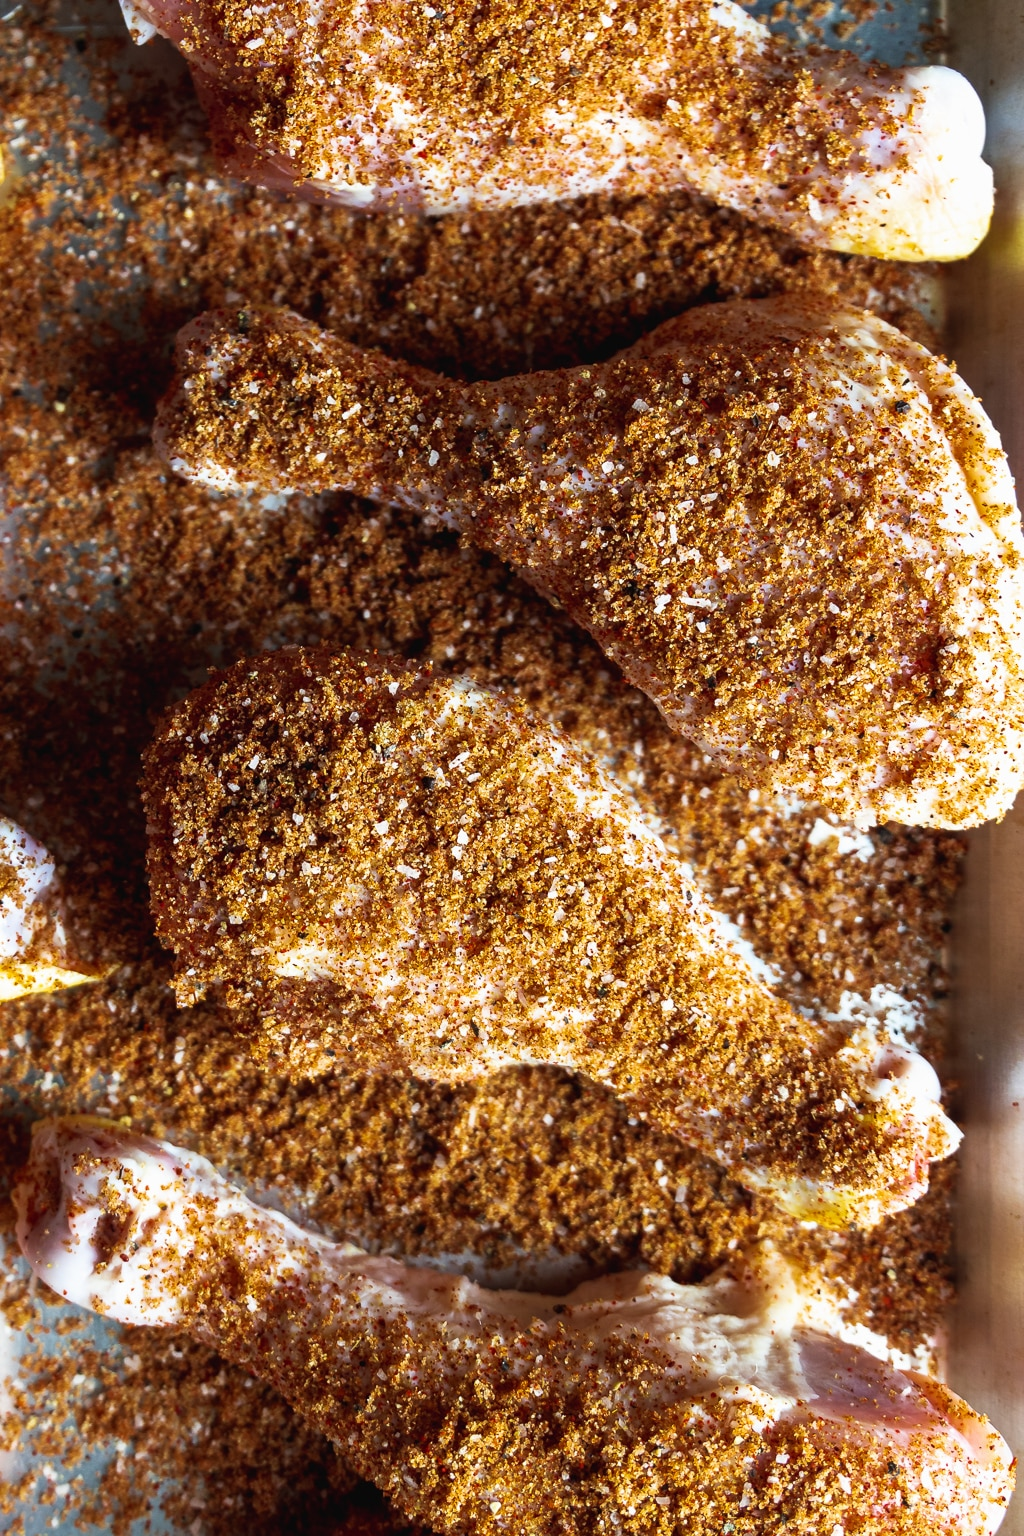 chicken legs sprinkled with barbecue rub seasoning